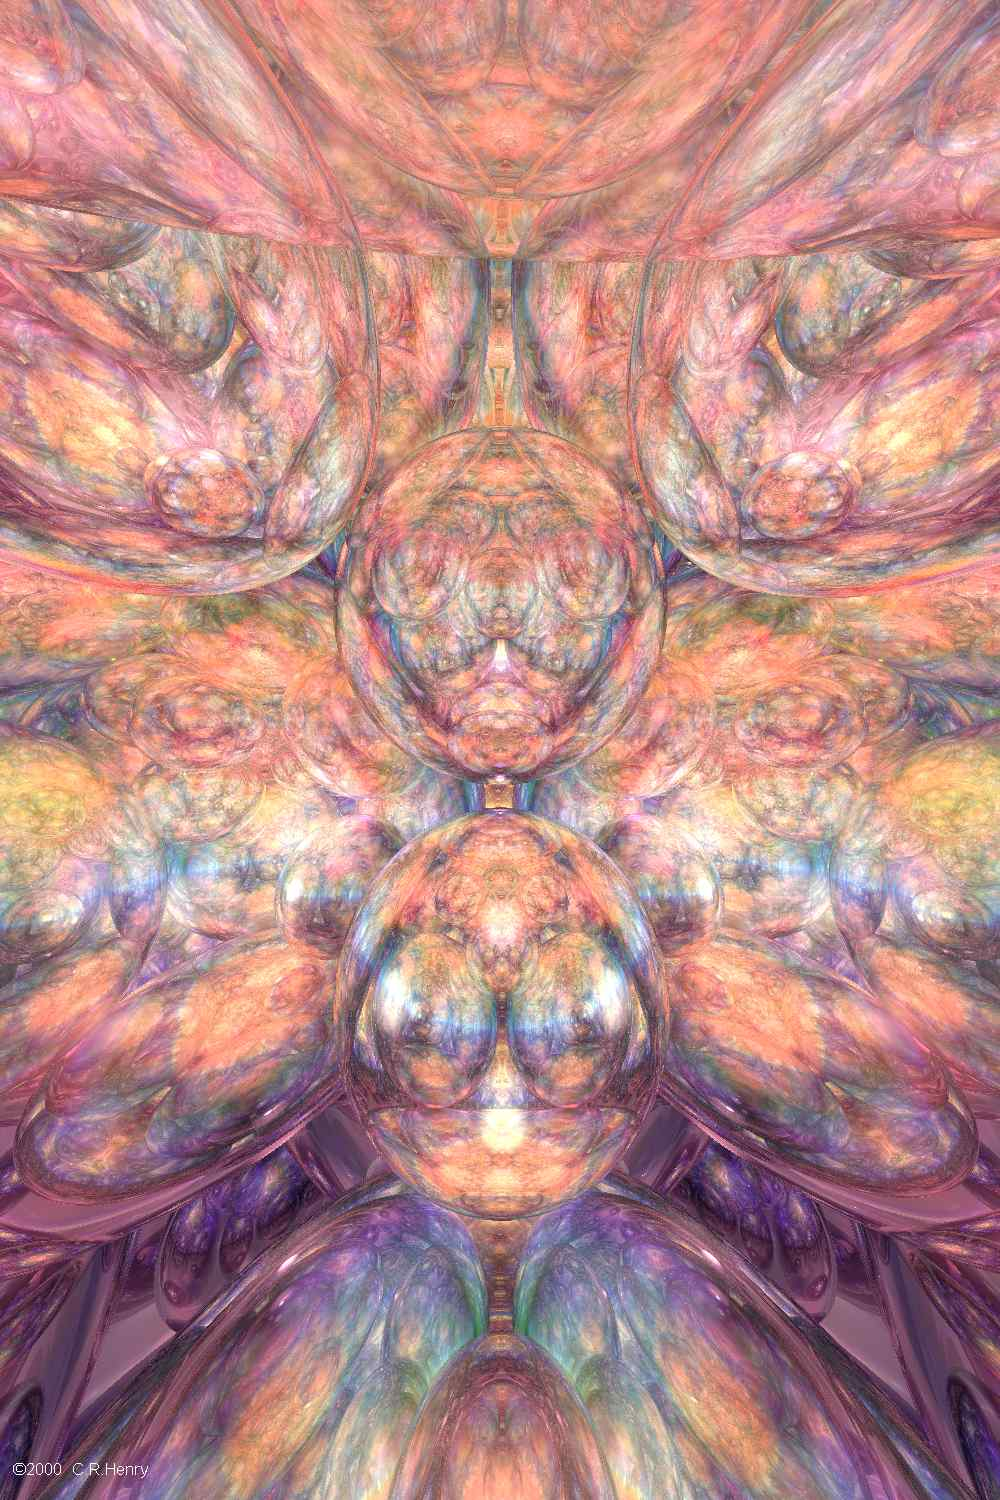 Human Form From Sacred Geometry